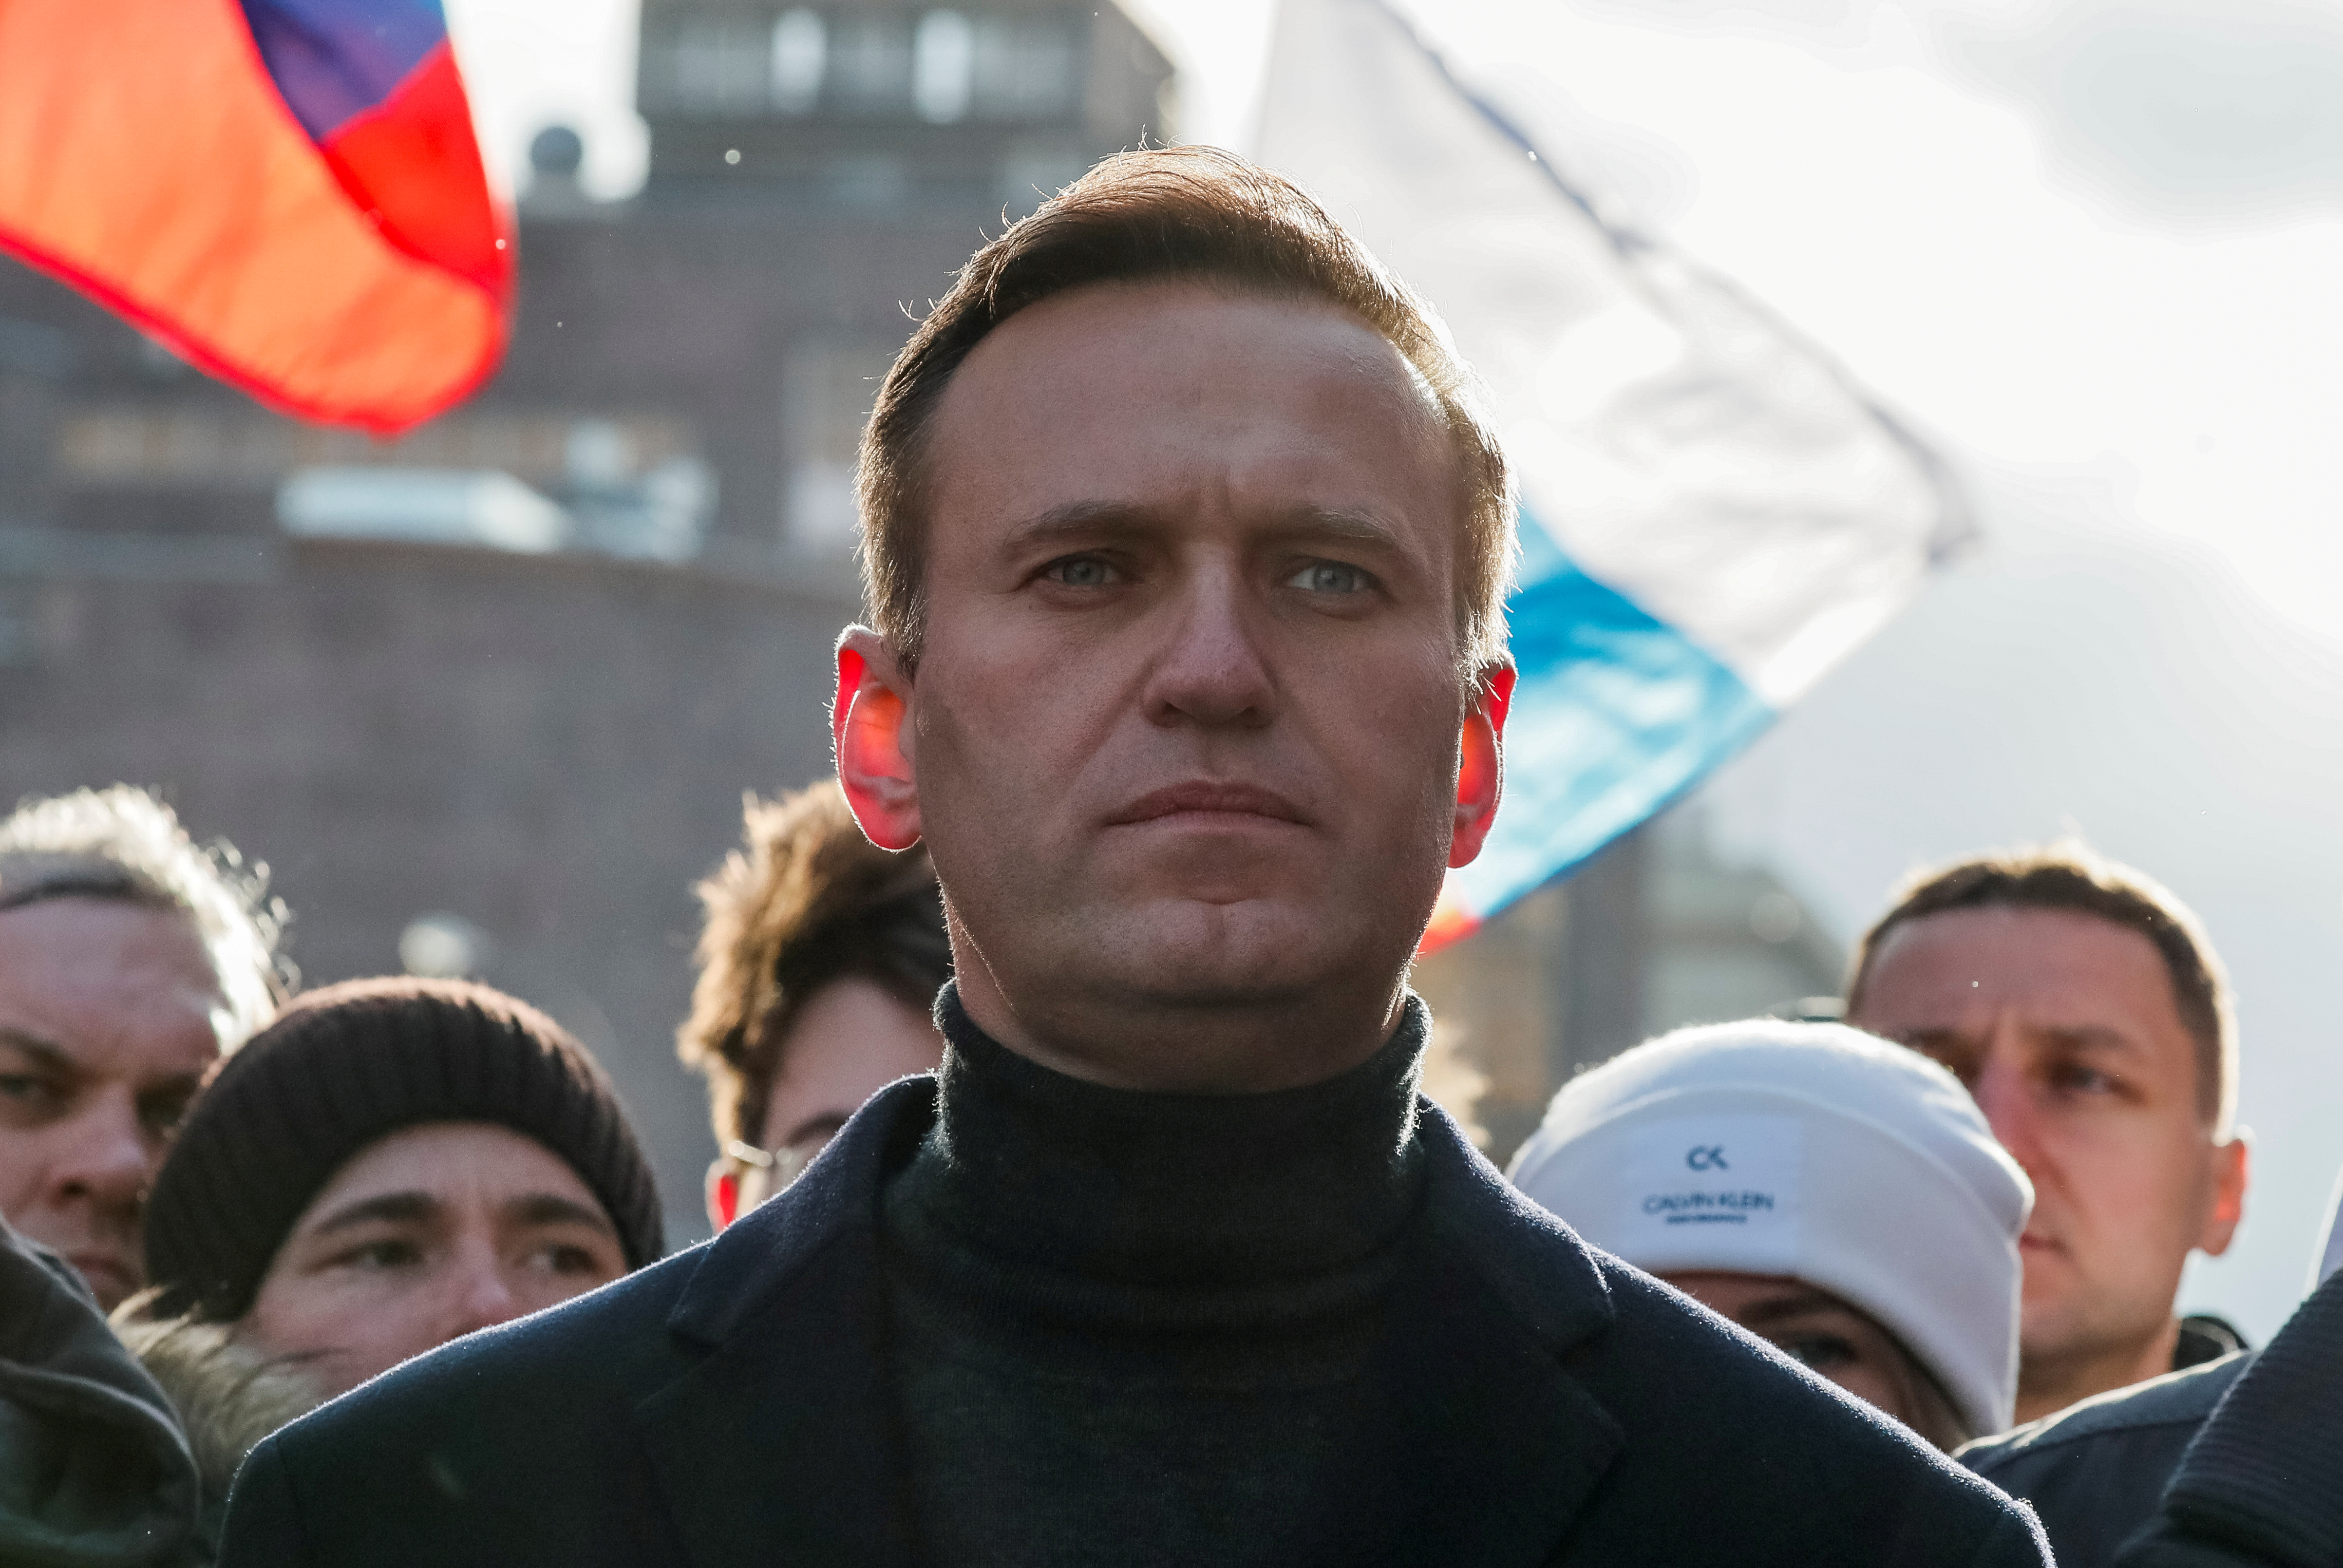 Kremlin critic Alexei Navalny to fly to Russia on Sunday despite risks